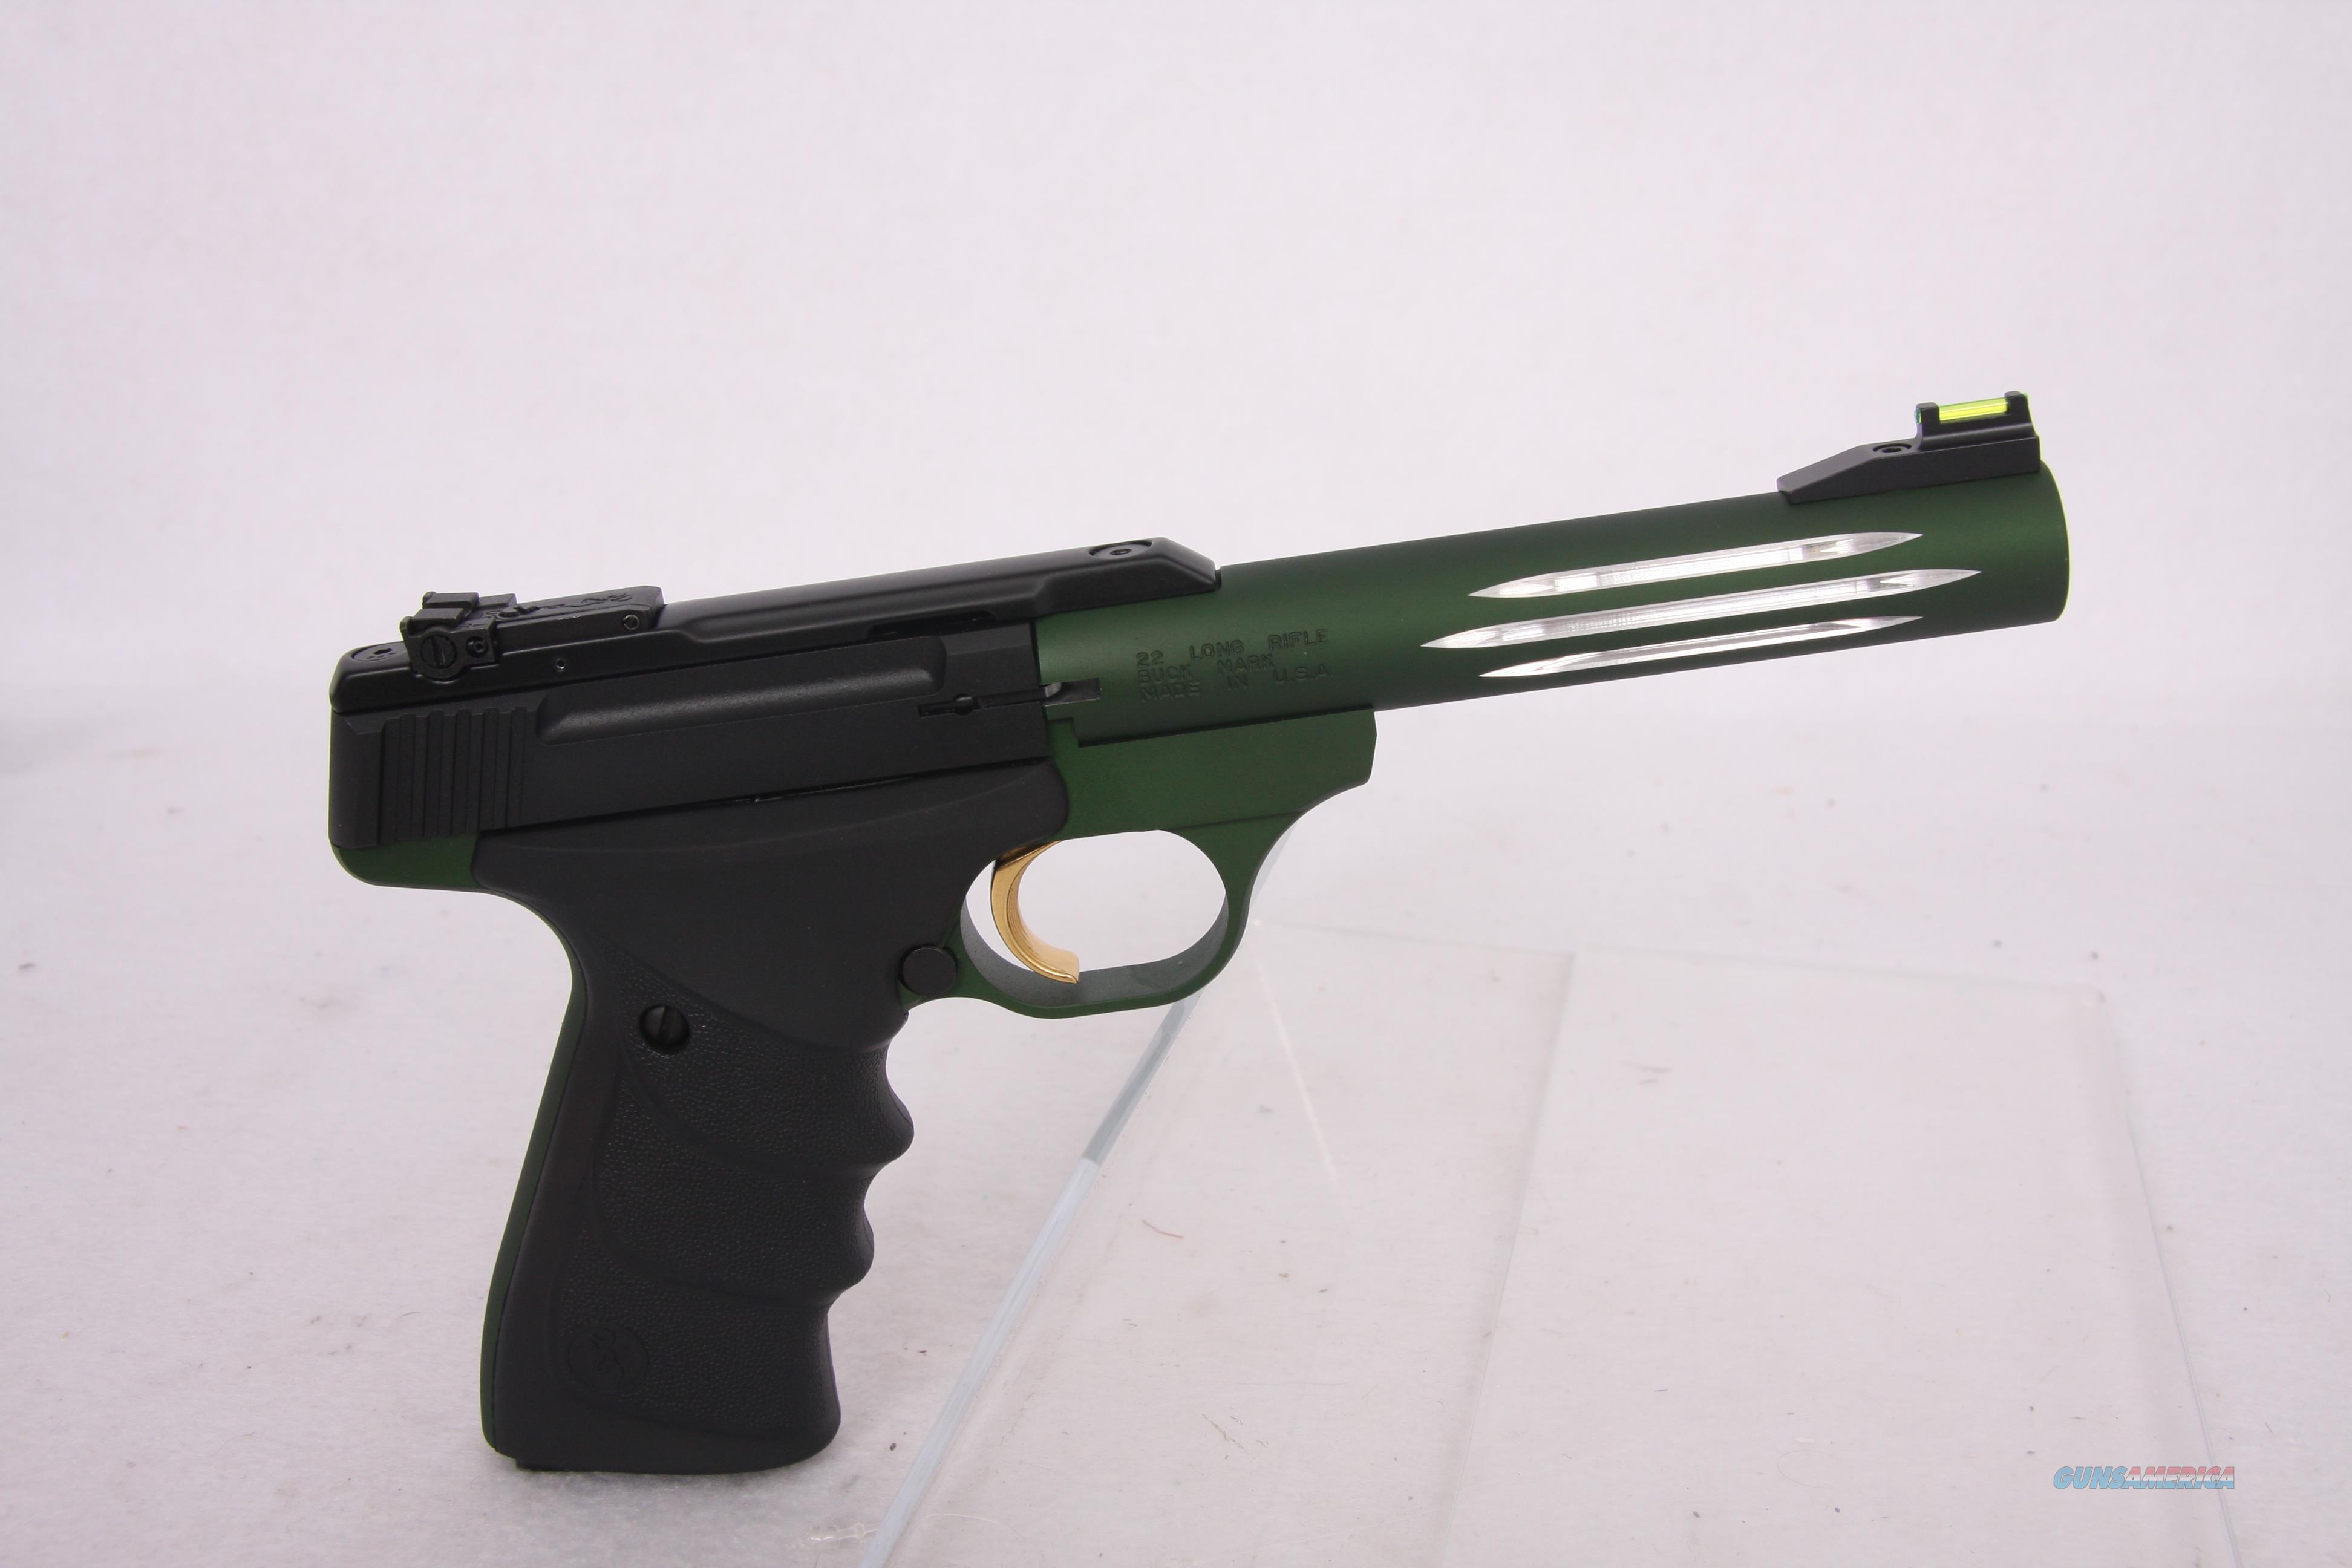 Browning Buck Mark Lite Green URX .22Lr 5.5in  Guns > Pistols > Browning Pistols > Buckmark